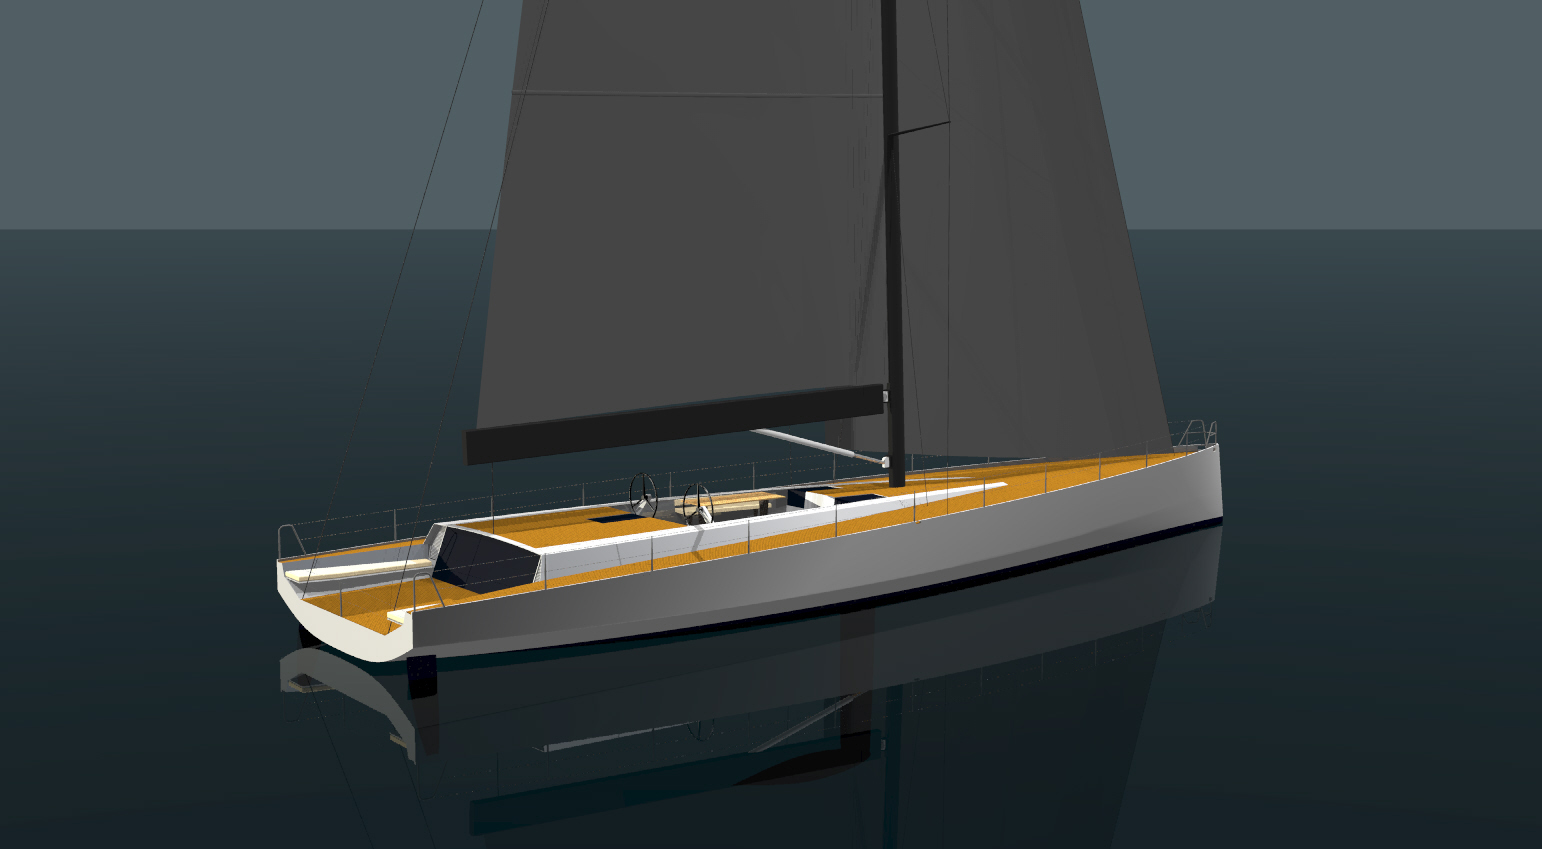 This is a 77' daysailer design from Owen Clarke Design who have over twenty five years experience implementing best design practice for cruising and racing yachts with twin rudder steering systems. Since designing the 30' ULDB Maverick in 1993 we have created over fifty twin rudder sailboat designs and along the way tank tested more than twenty hull and appendage configurations in model towing tanks.